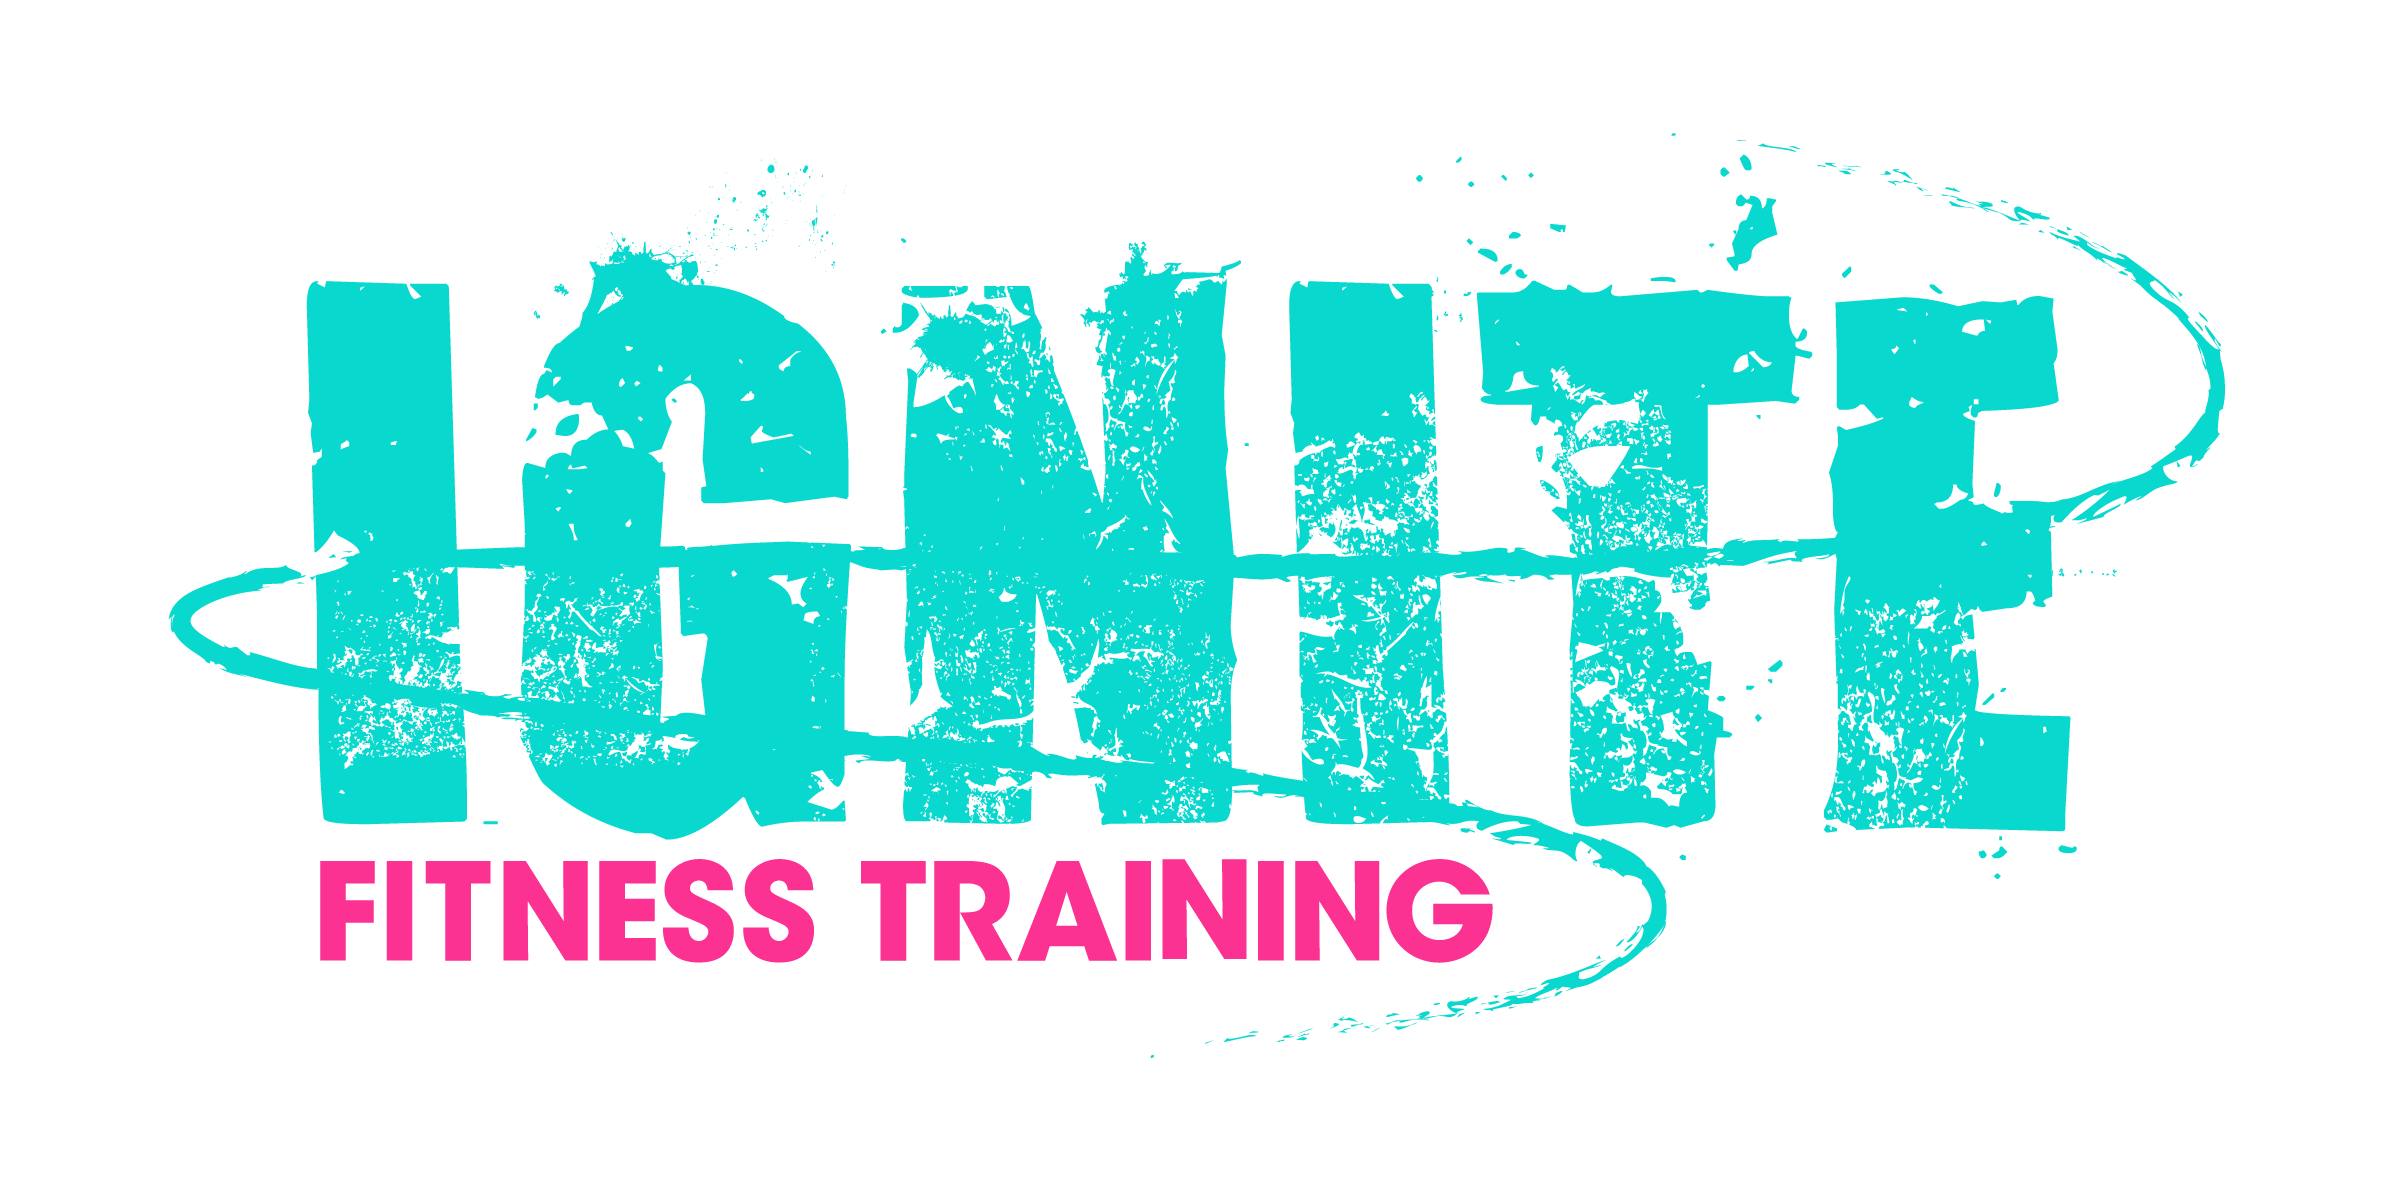 IGNITE Fitness Academy